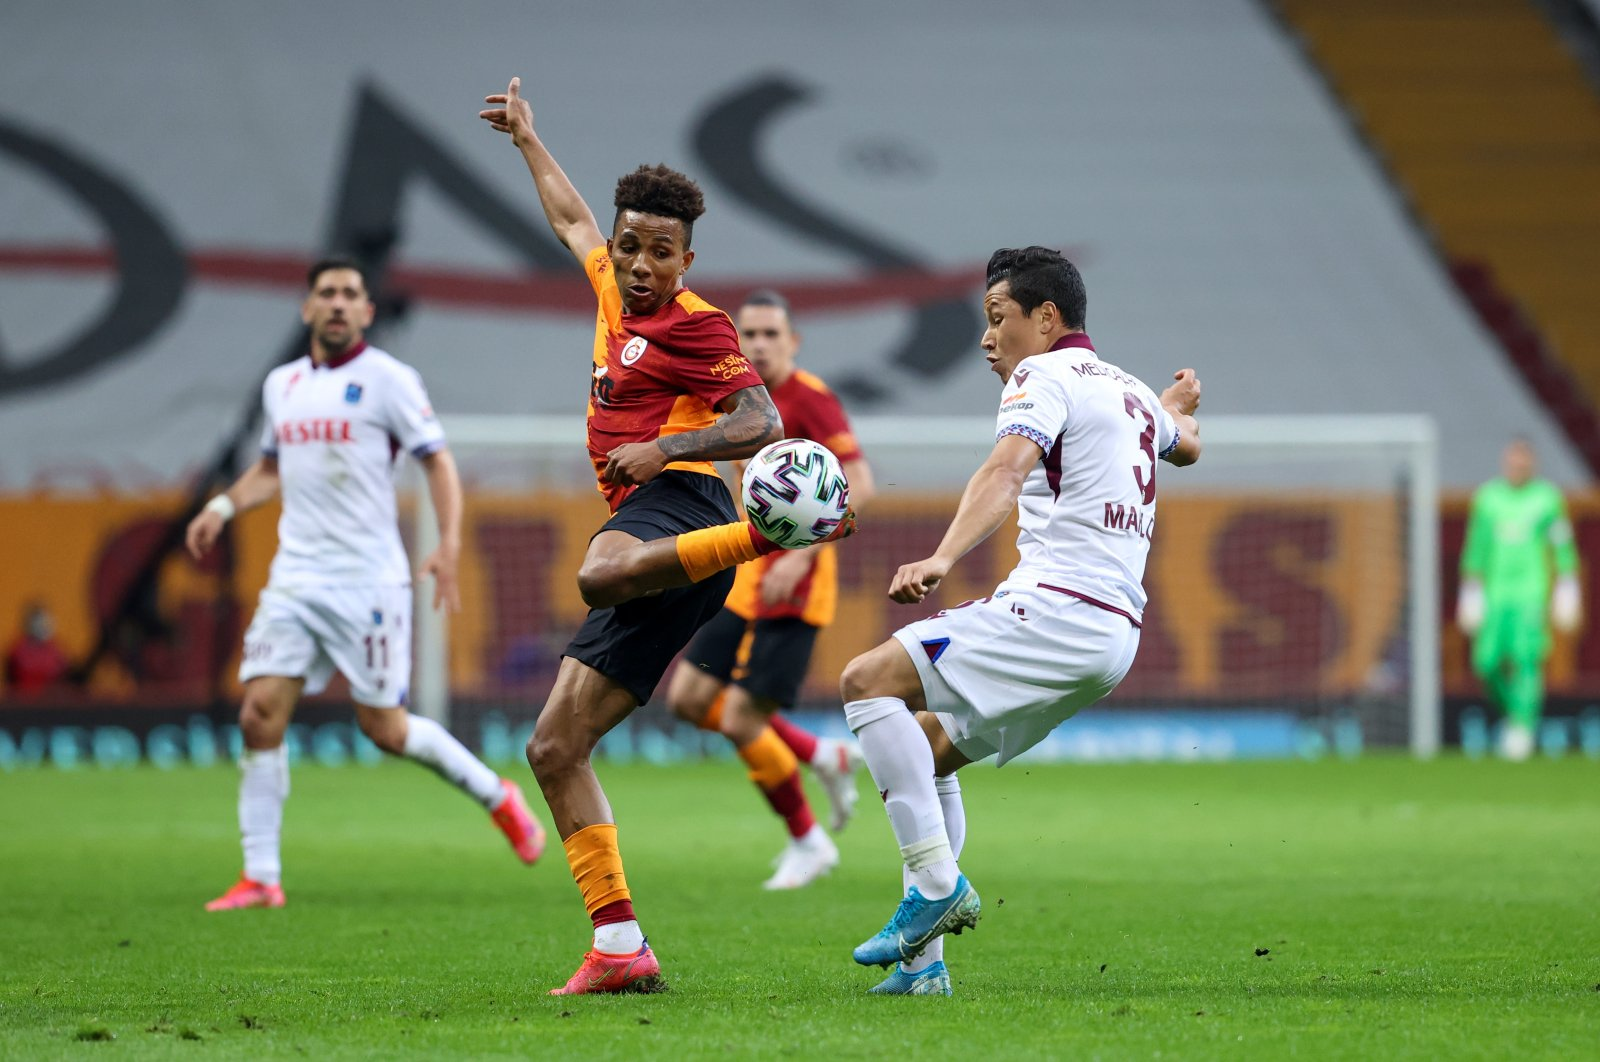 Galatasaray's Gedson Carvalho Fernandes (L) and Trabzonspor's Marlon Rodrigues Xavier compete for the ball during a Süper Lig match at Türk Telekom Arena in Istanbul, Turkey, April 21, 2021. (AA Photo)